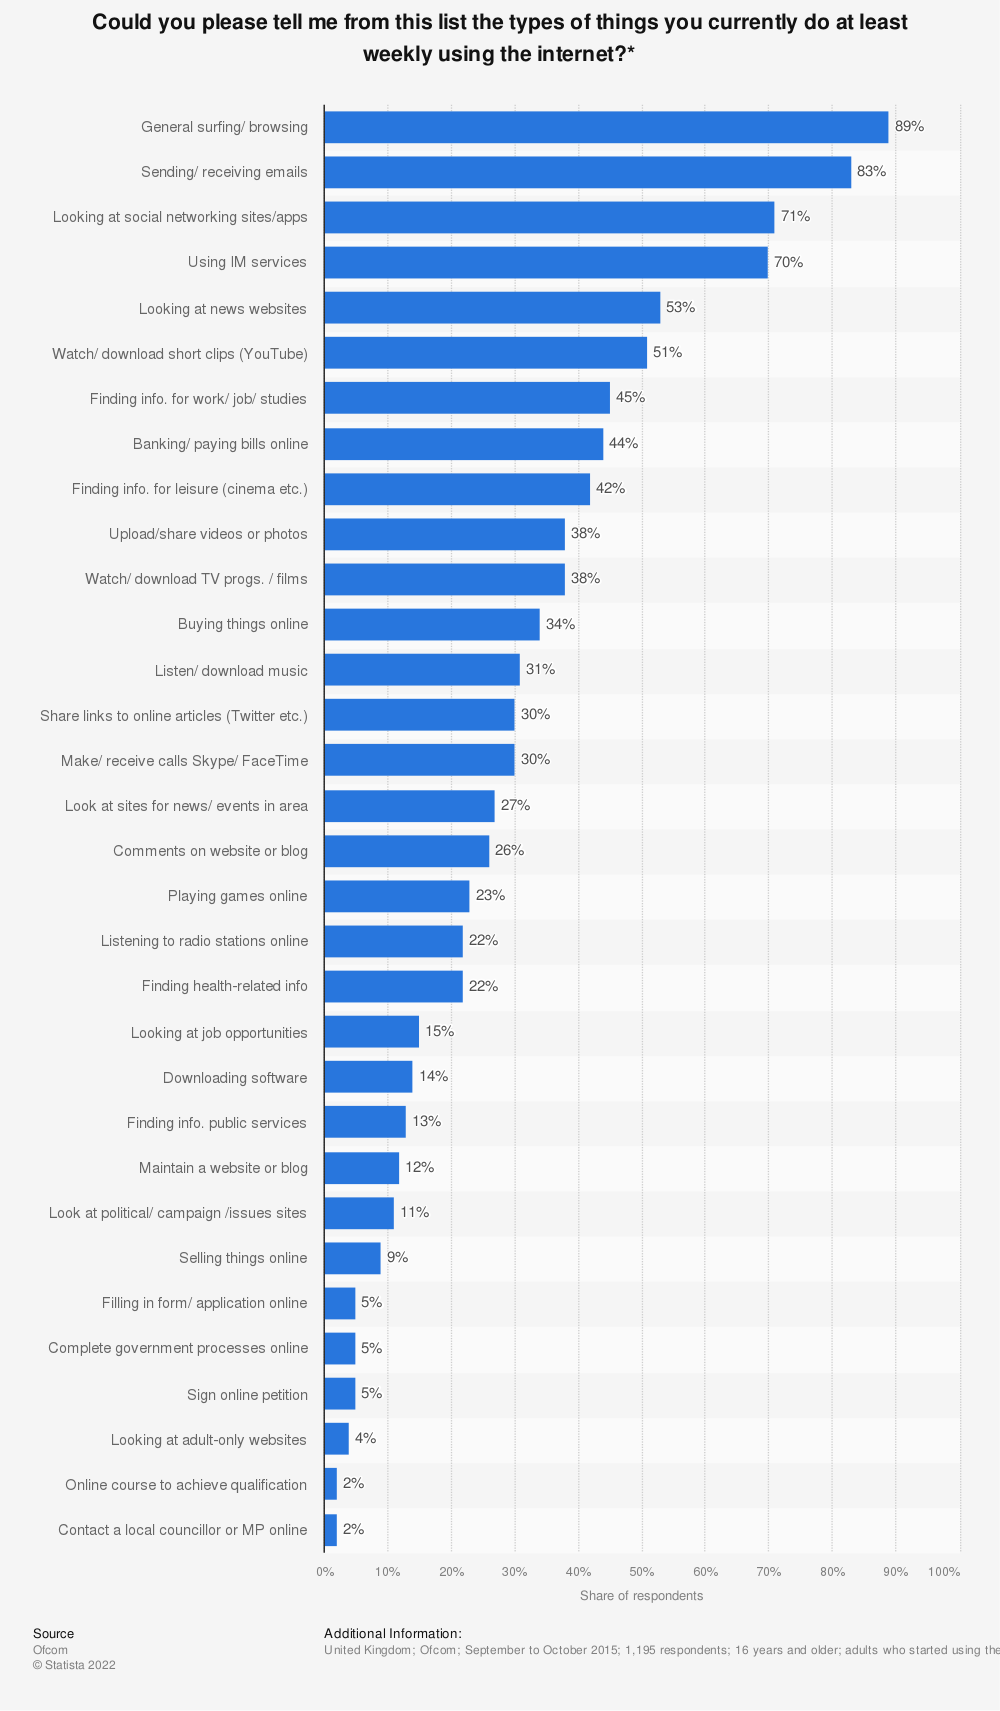 Statistic: Could you please tell me from this list the types of things you currently do at least weekly using the internet?* | Statista